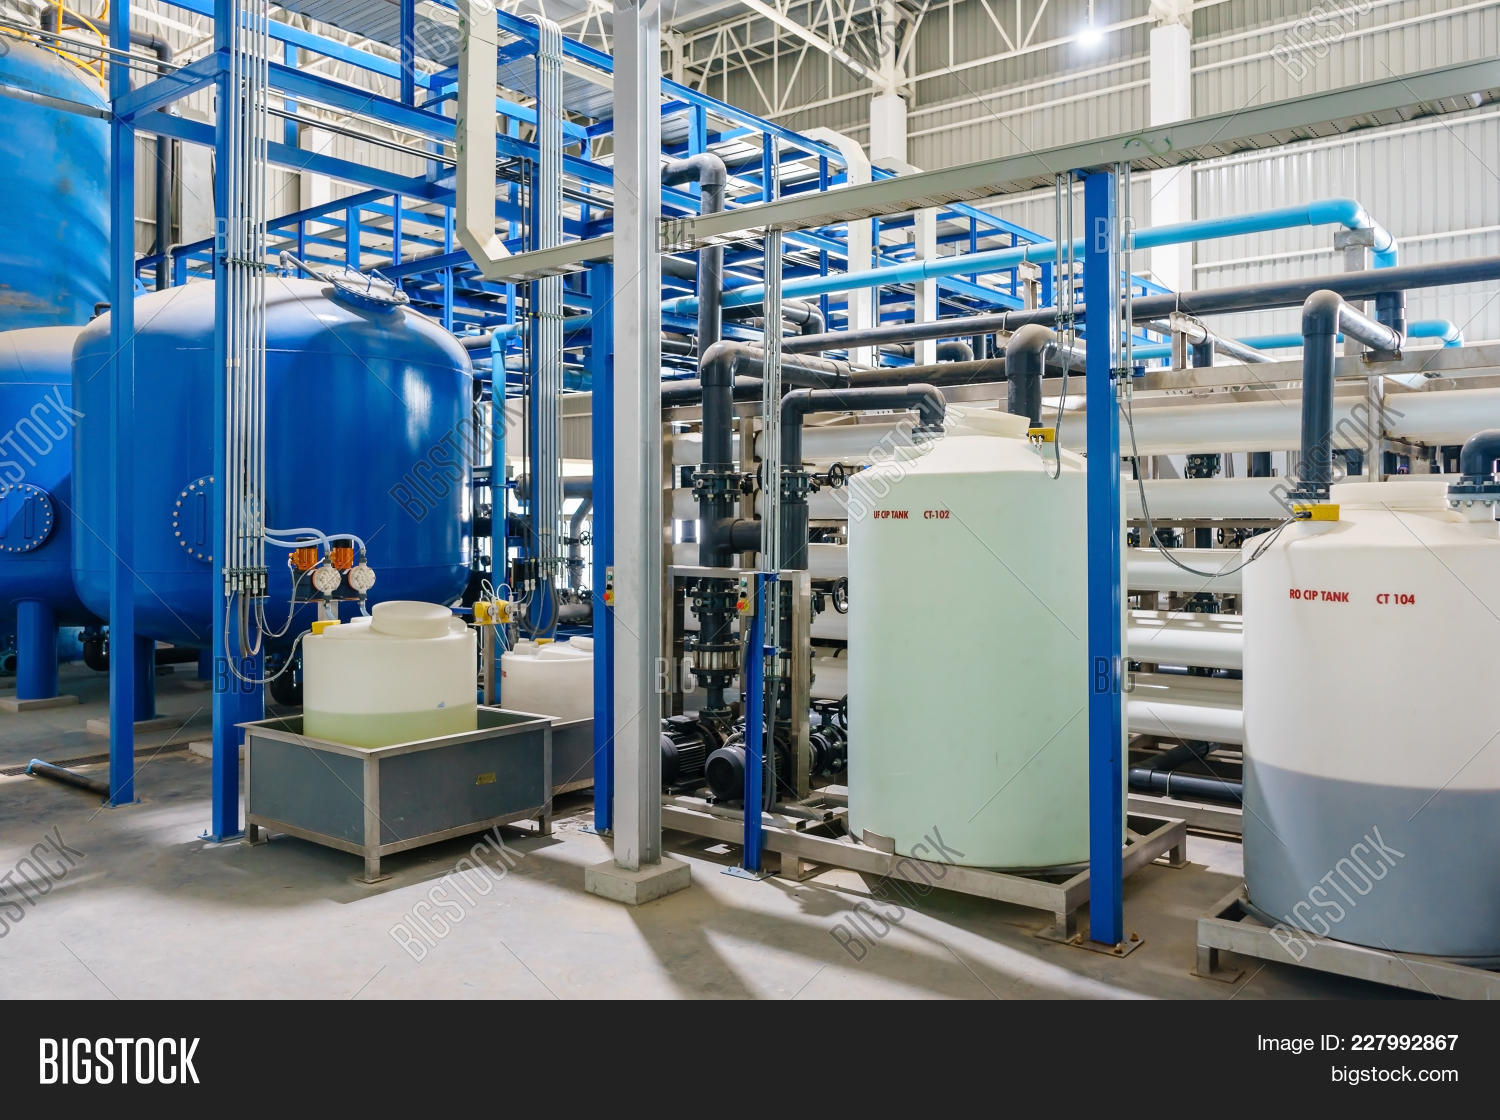 Large Industrial Water Image & Photo (Free Trial) | Bigstock